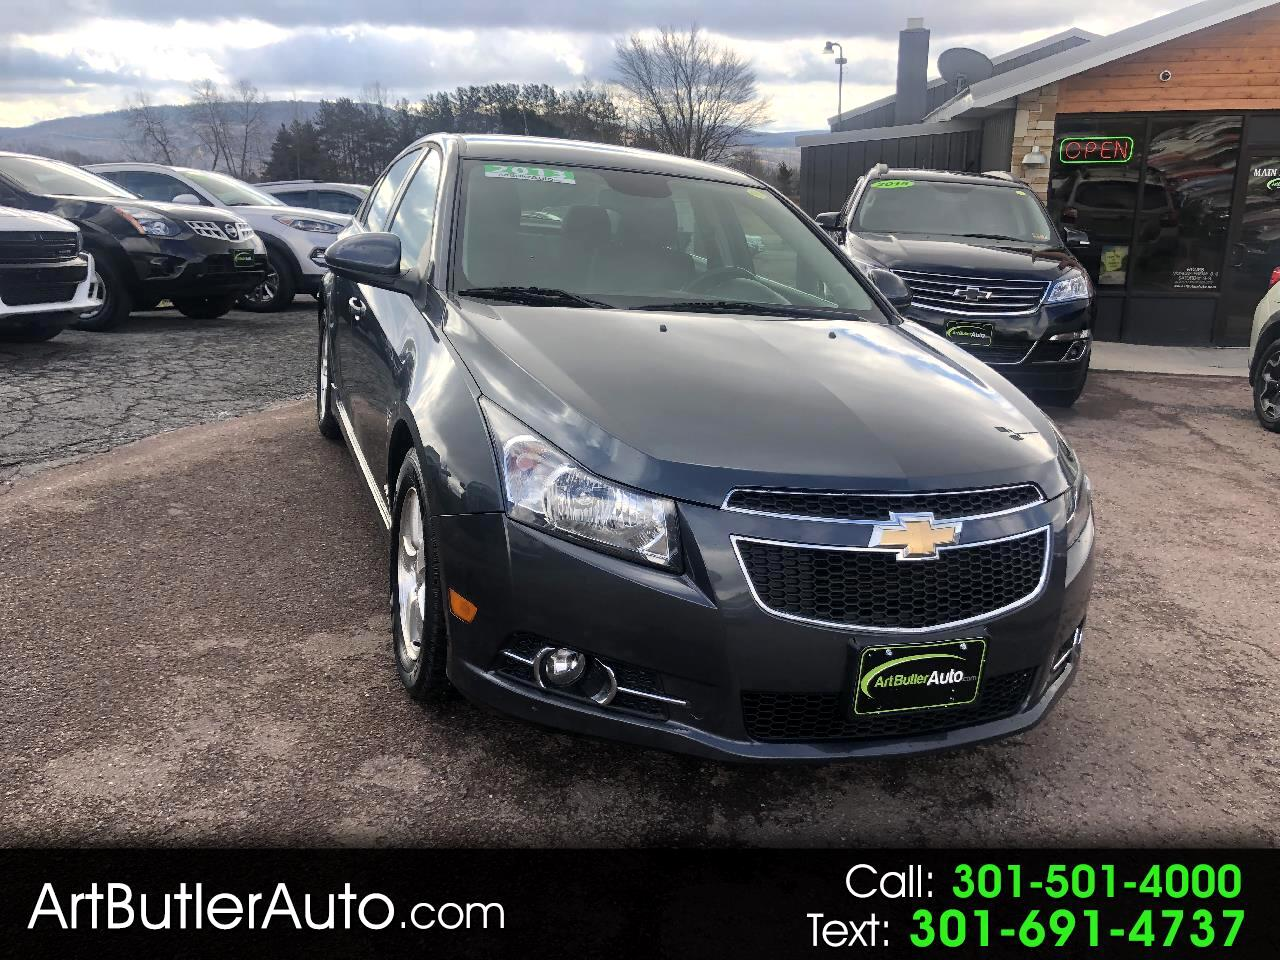 2013 Chevrolet Cruze 4 Dr Sdn Auto 1 LT RS